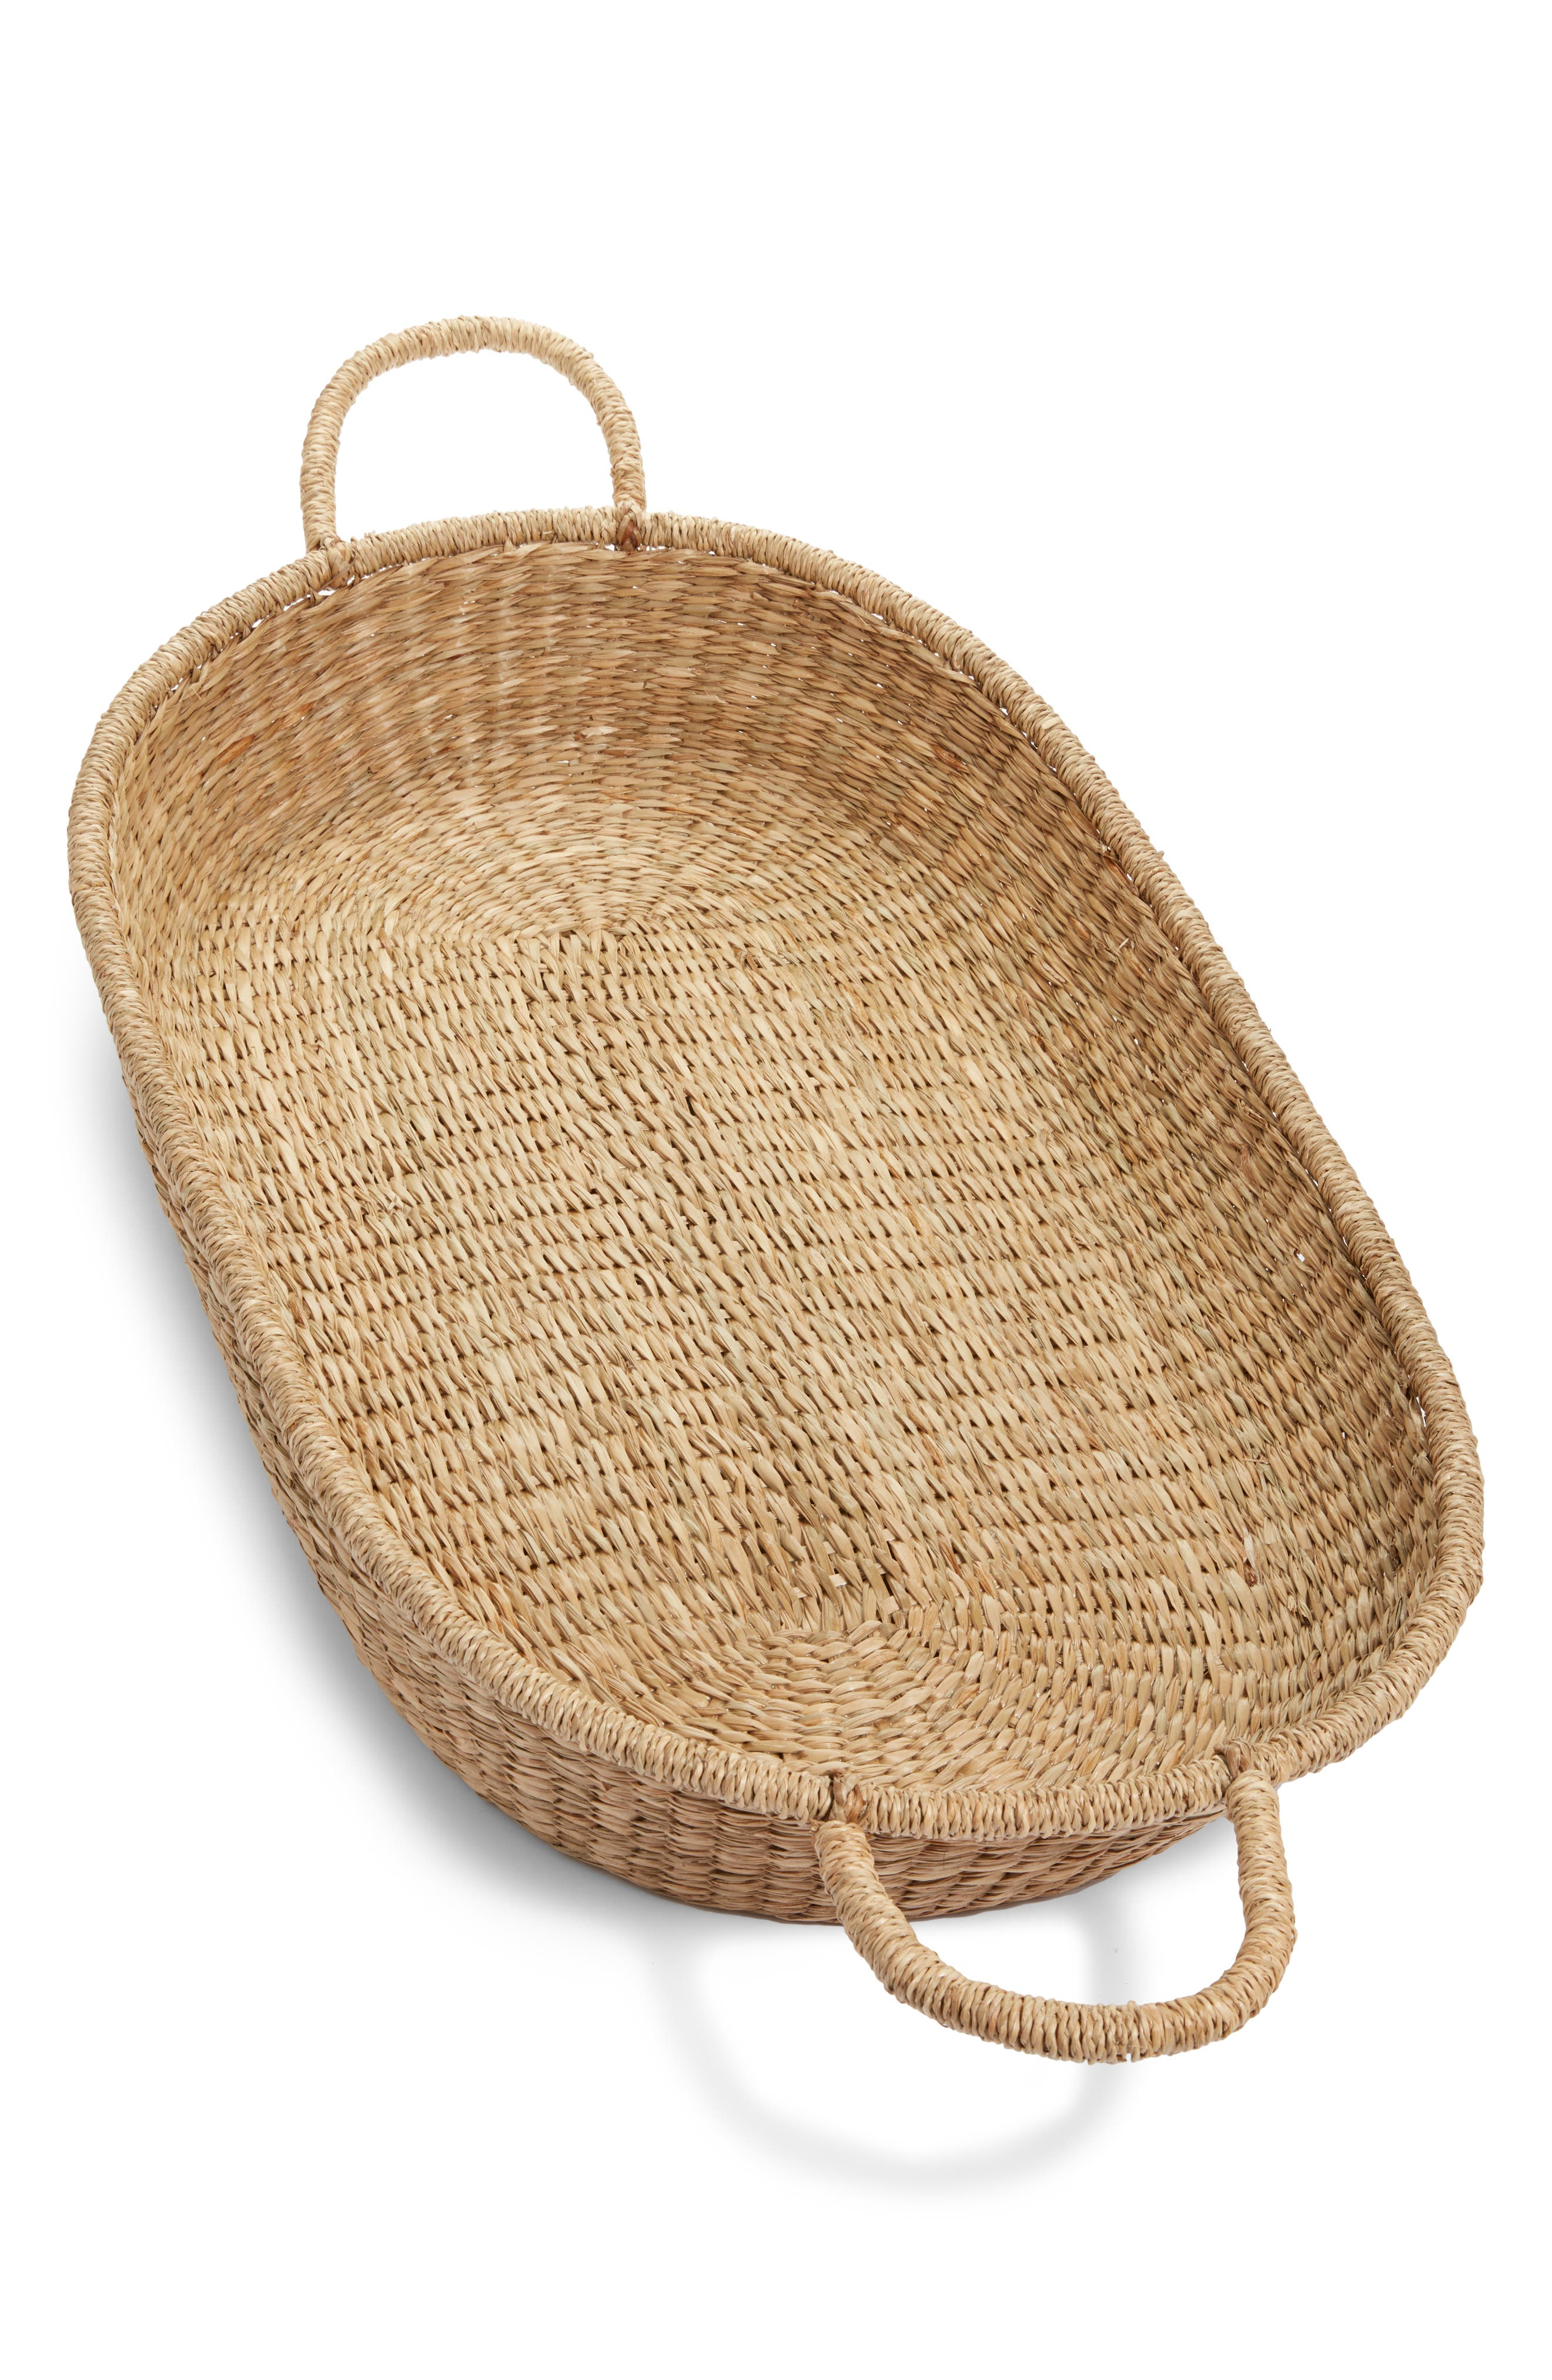 Infant Olli Ella Woven Rattan Changing Basket Size One Size  Brown